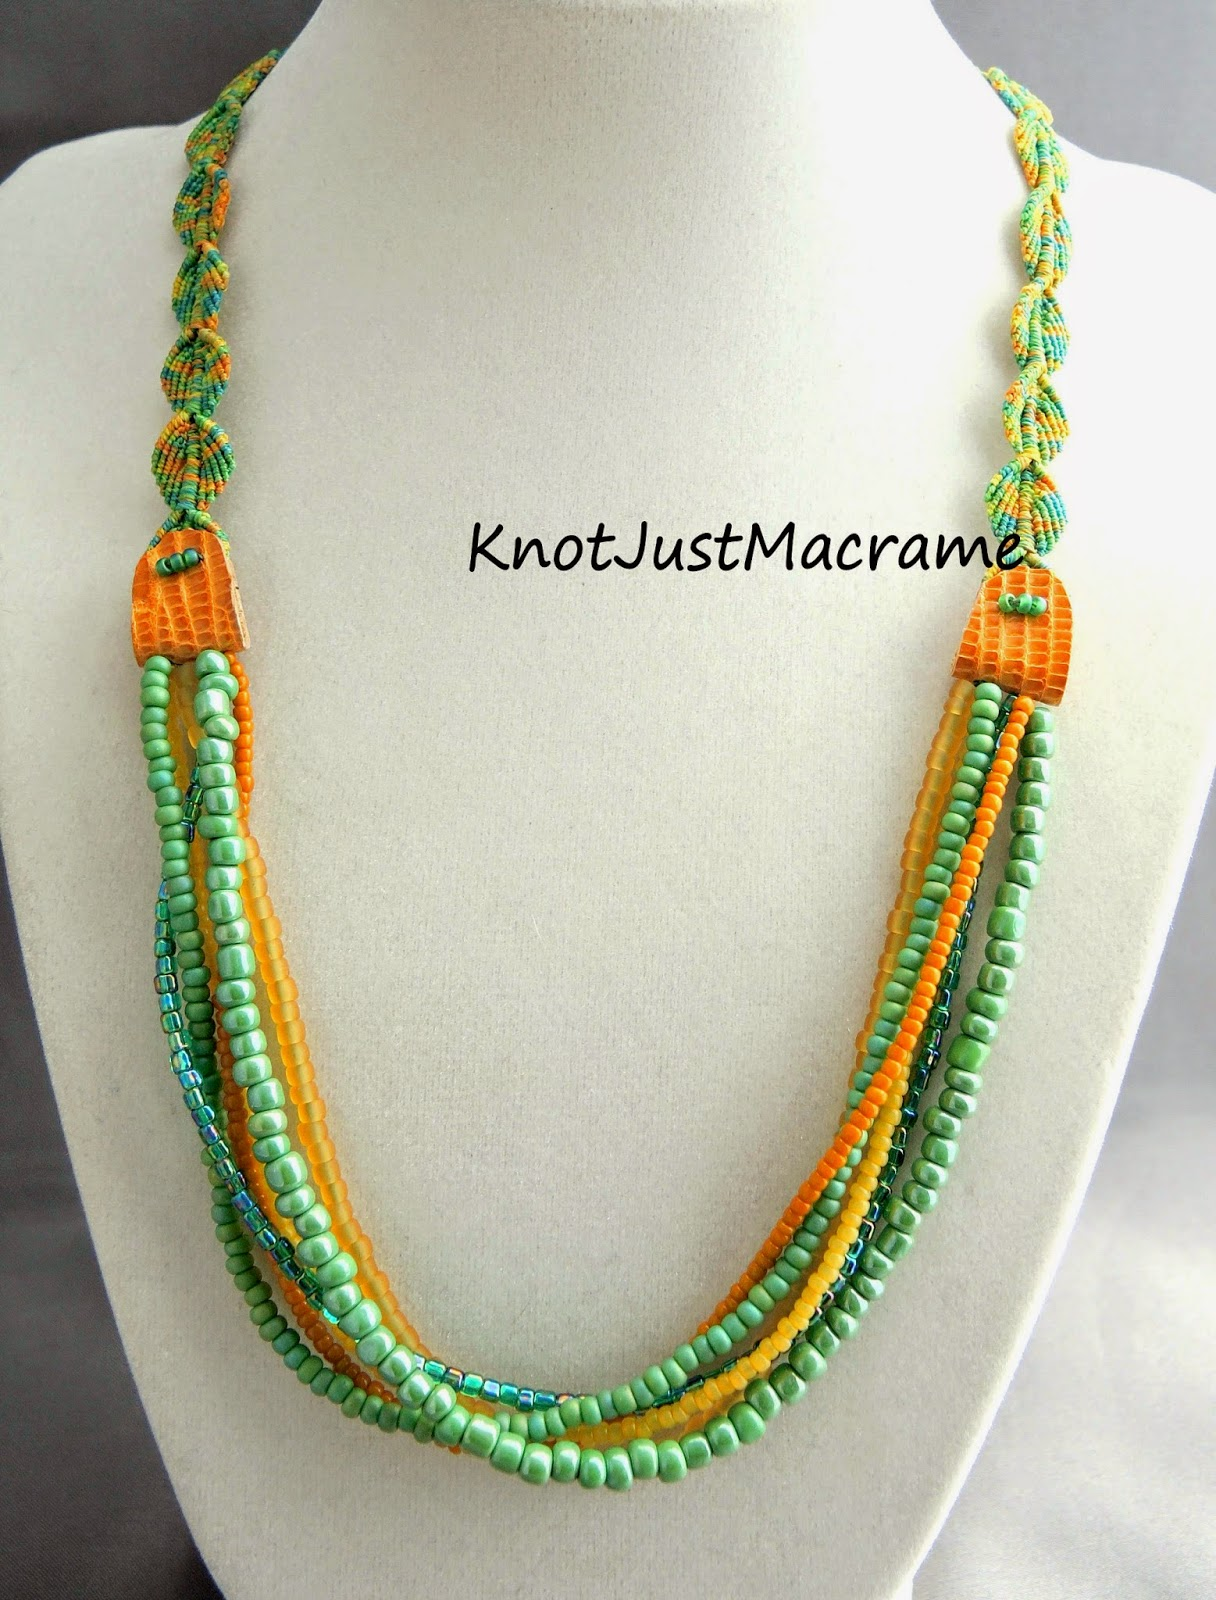 Micro macrame necklace by Sherri Stokey with knotted leaves, leather connectors and multiple strands of beads.